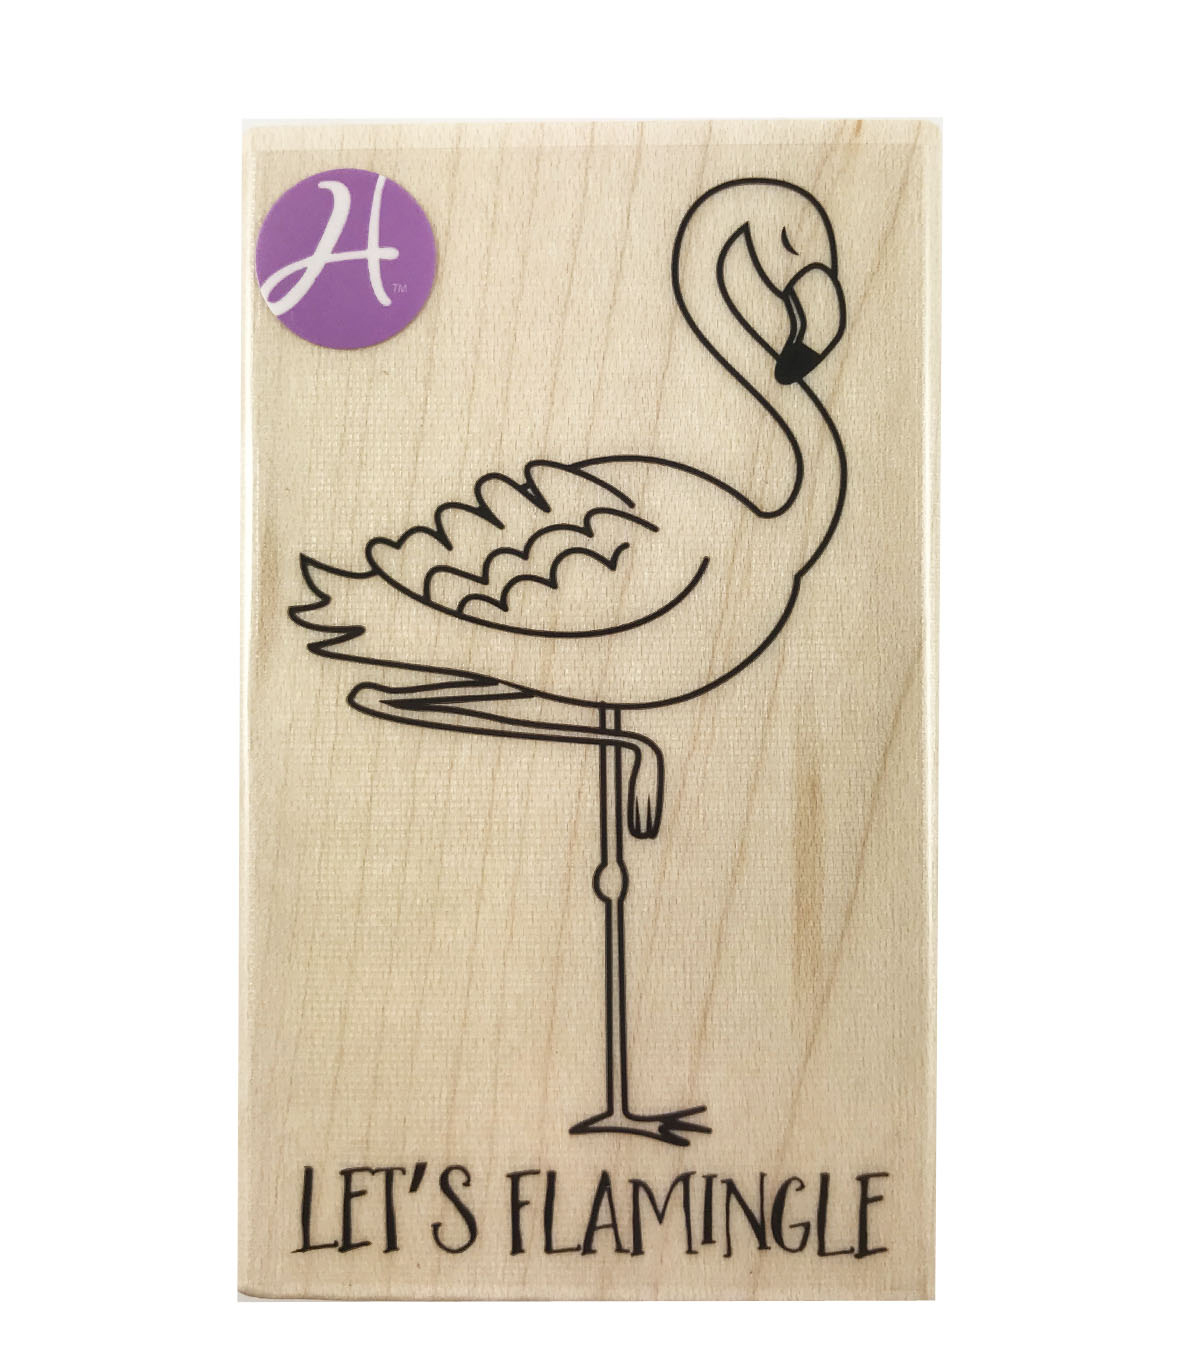 Hampton Art 2\u0022x3.25\u0022 Mounted Stamp-Let\u0027s Flamingle